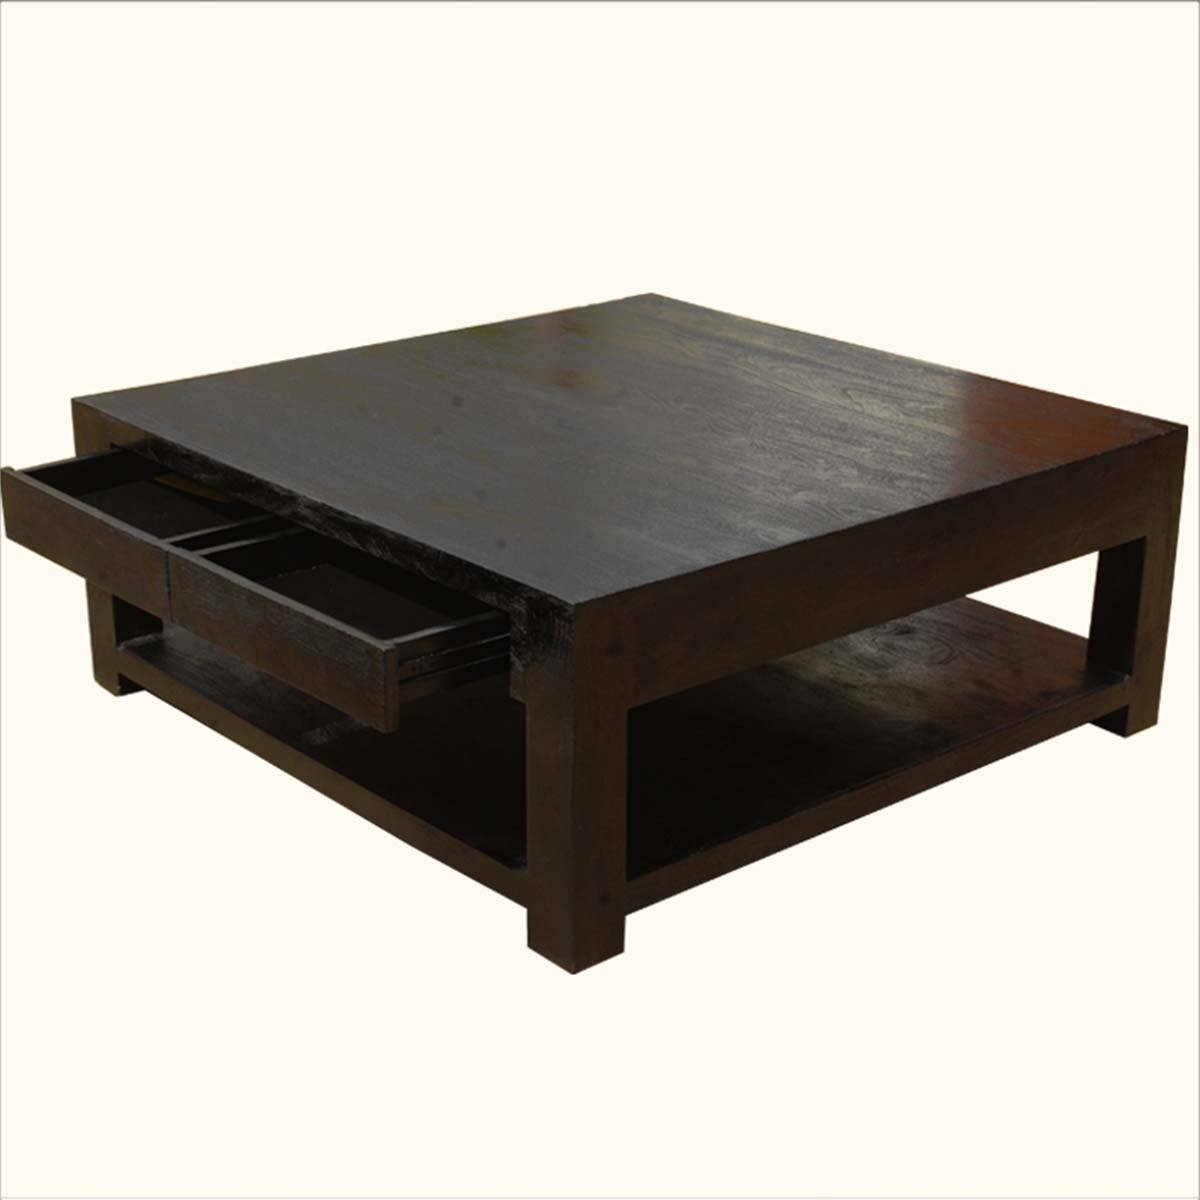 Espresso Solid Wood Coffee Table | Coffee Tables Decoration intended for Square Dark Wood Coffee Tables (Image 14 of 30)